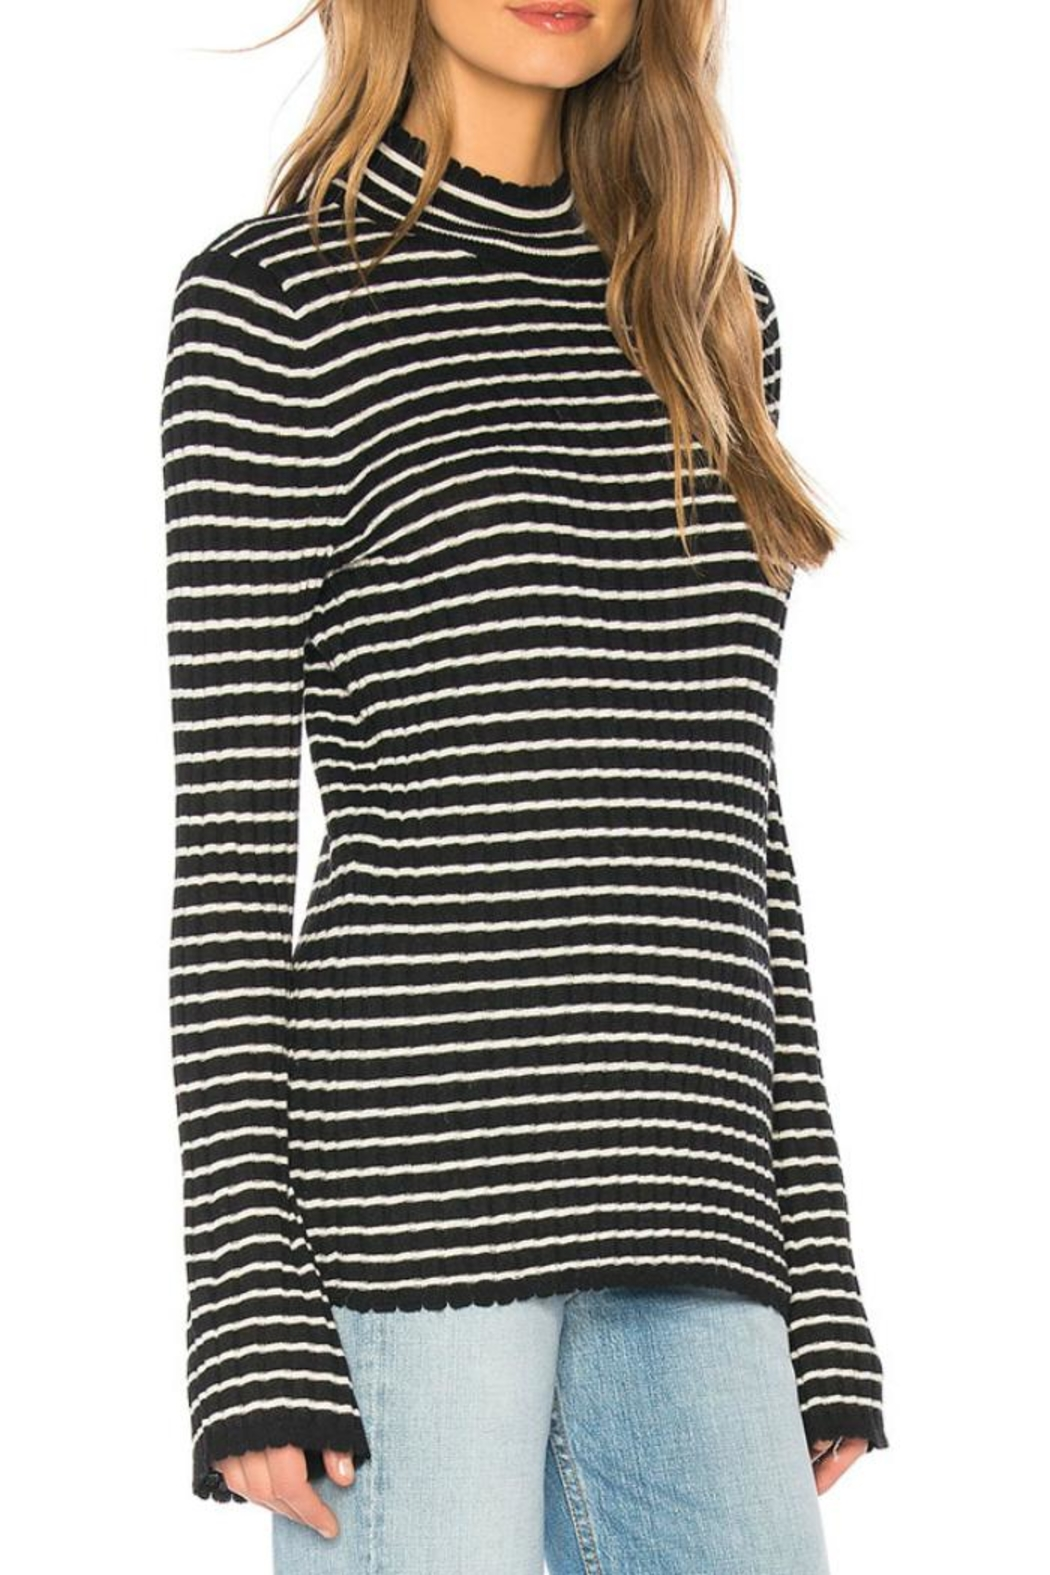 Joie Gestina Sweater - Side Cropped Image